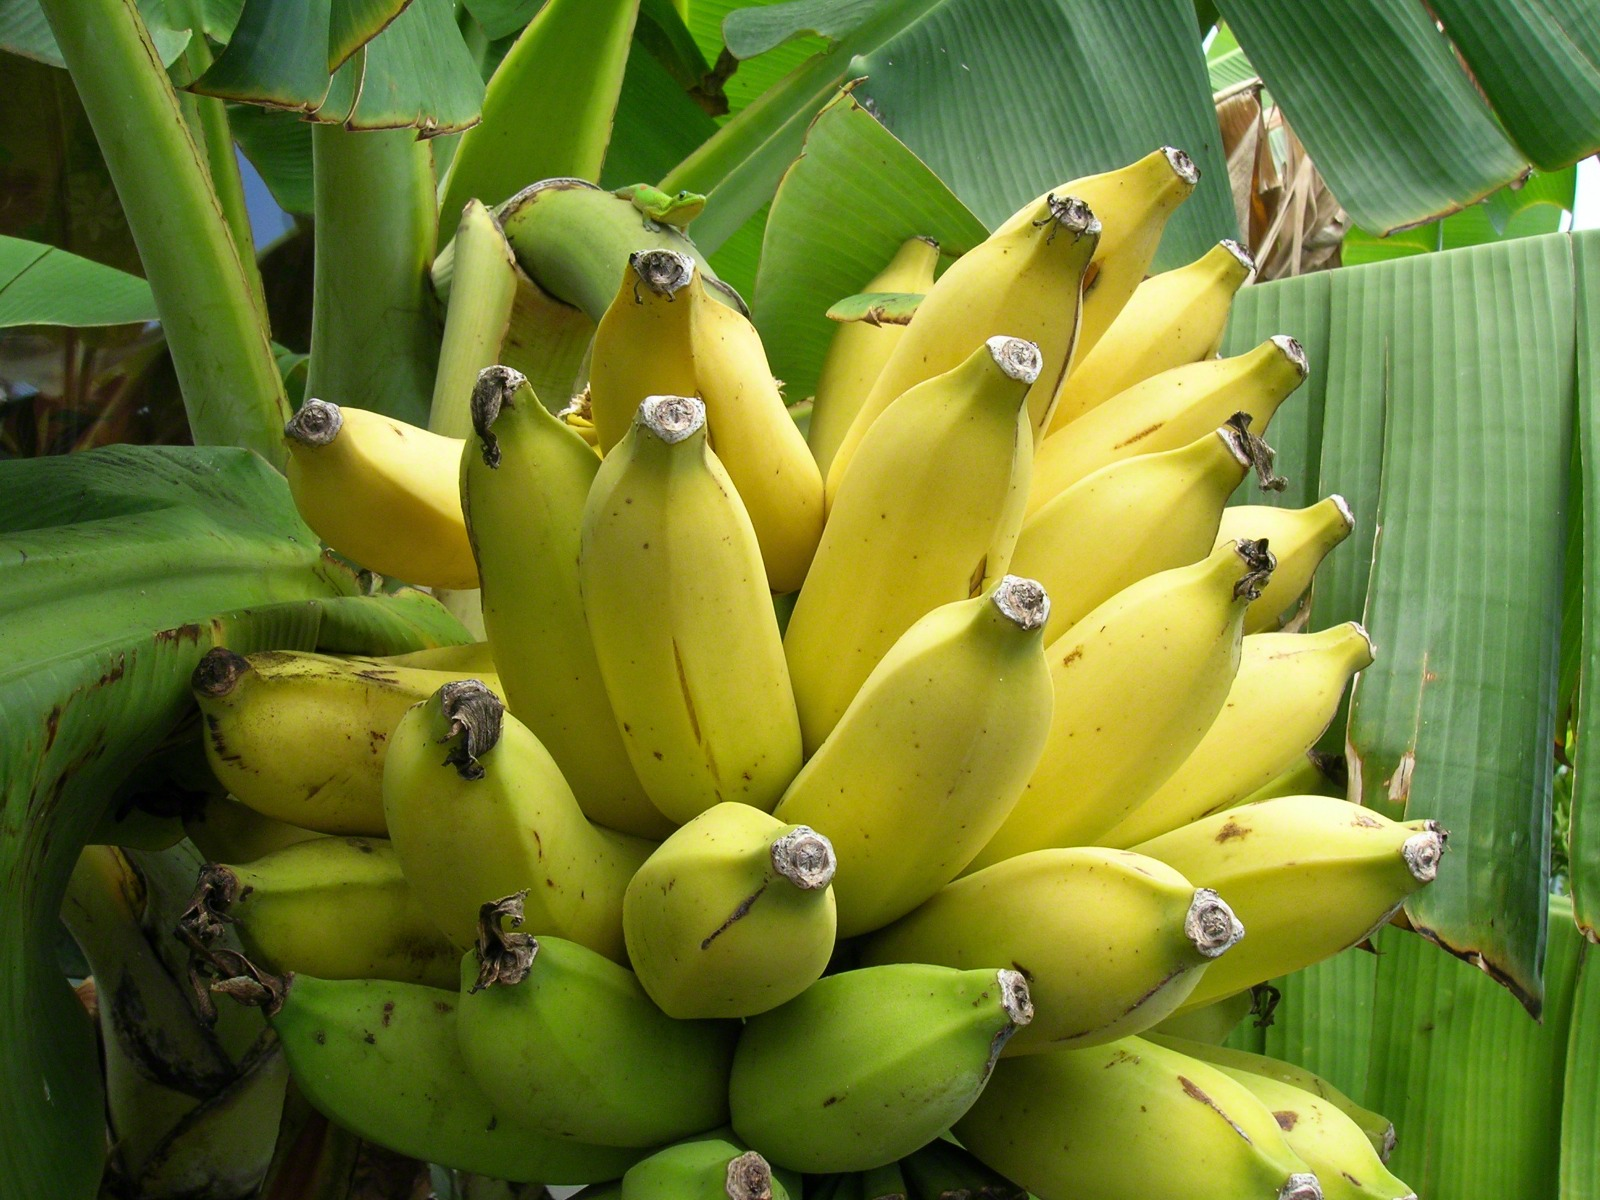 Yellow Banana Tree Pictures Mobile tablet print wallpaper 1600x1200